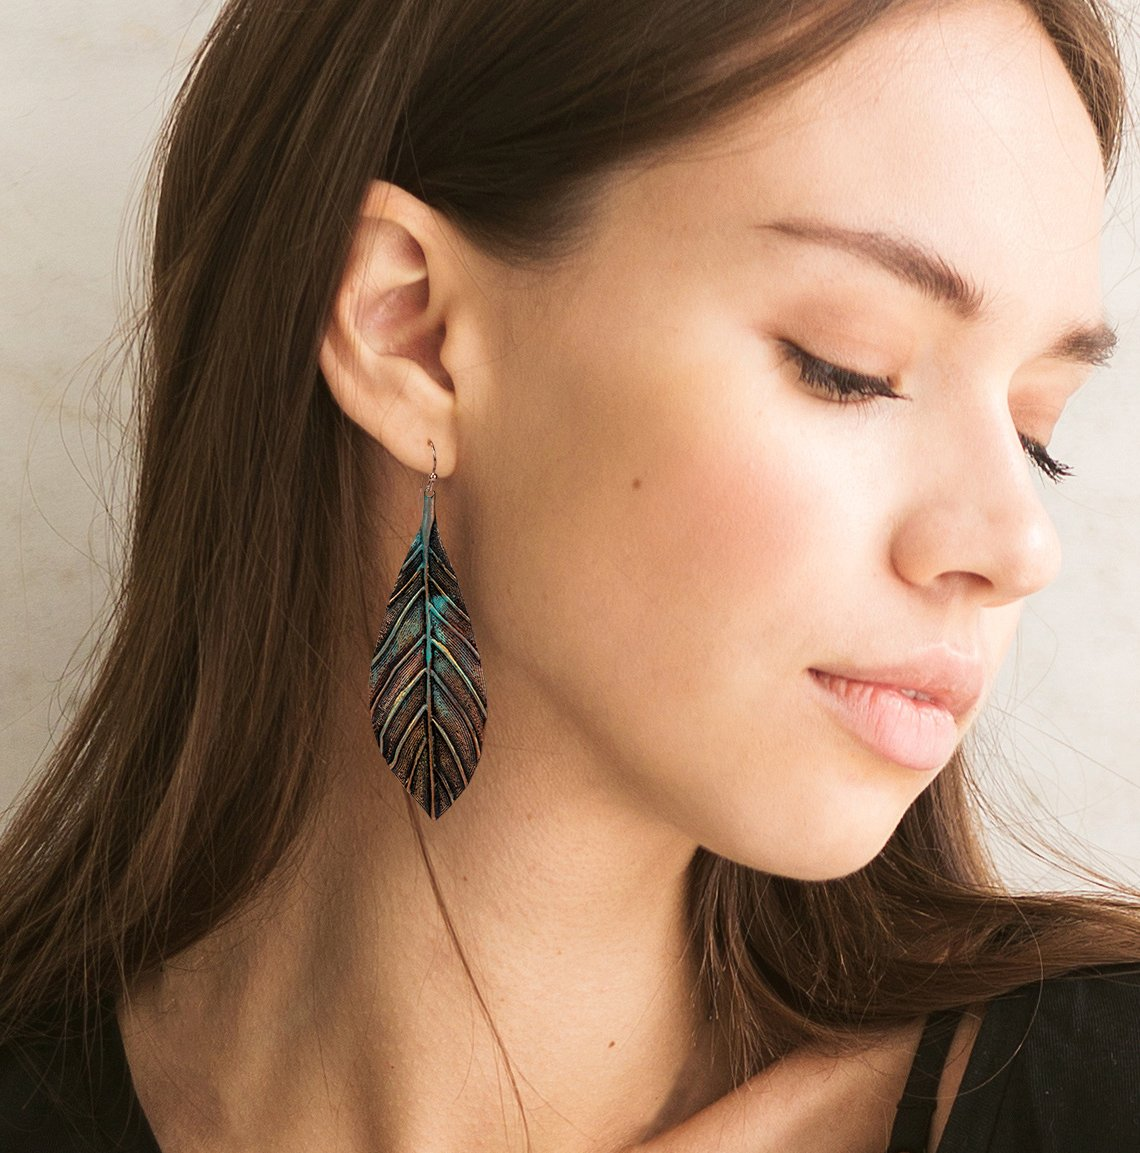 New! Handmade Boho Lightweight Statement Leaf Earrings with Detailed Texture for Women | SPUNKYsoul Collection by SPUNKYsoul (Image #2)